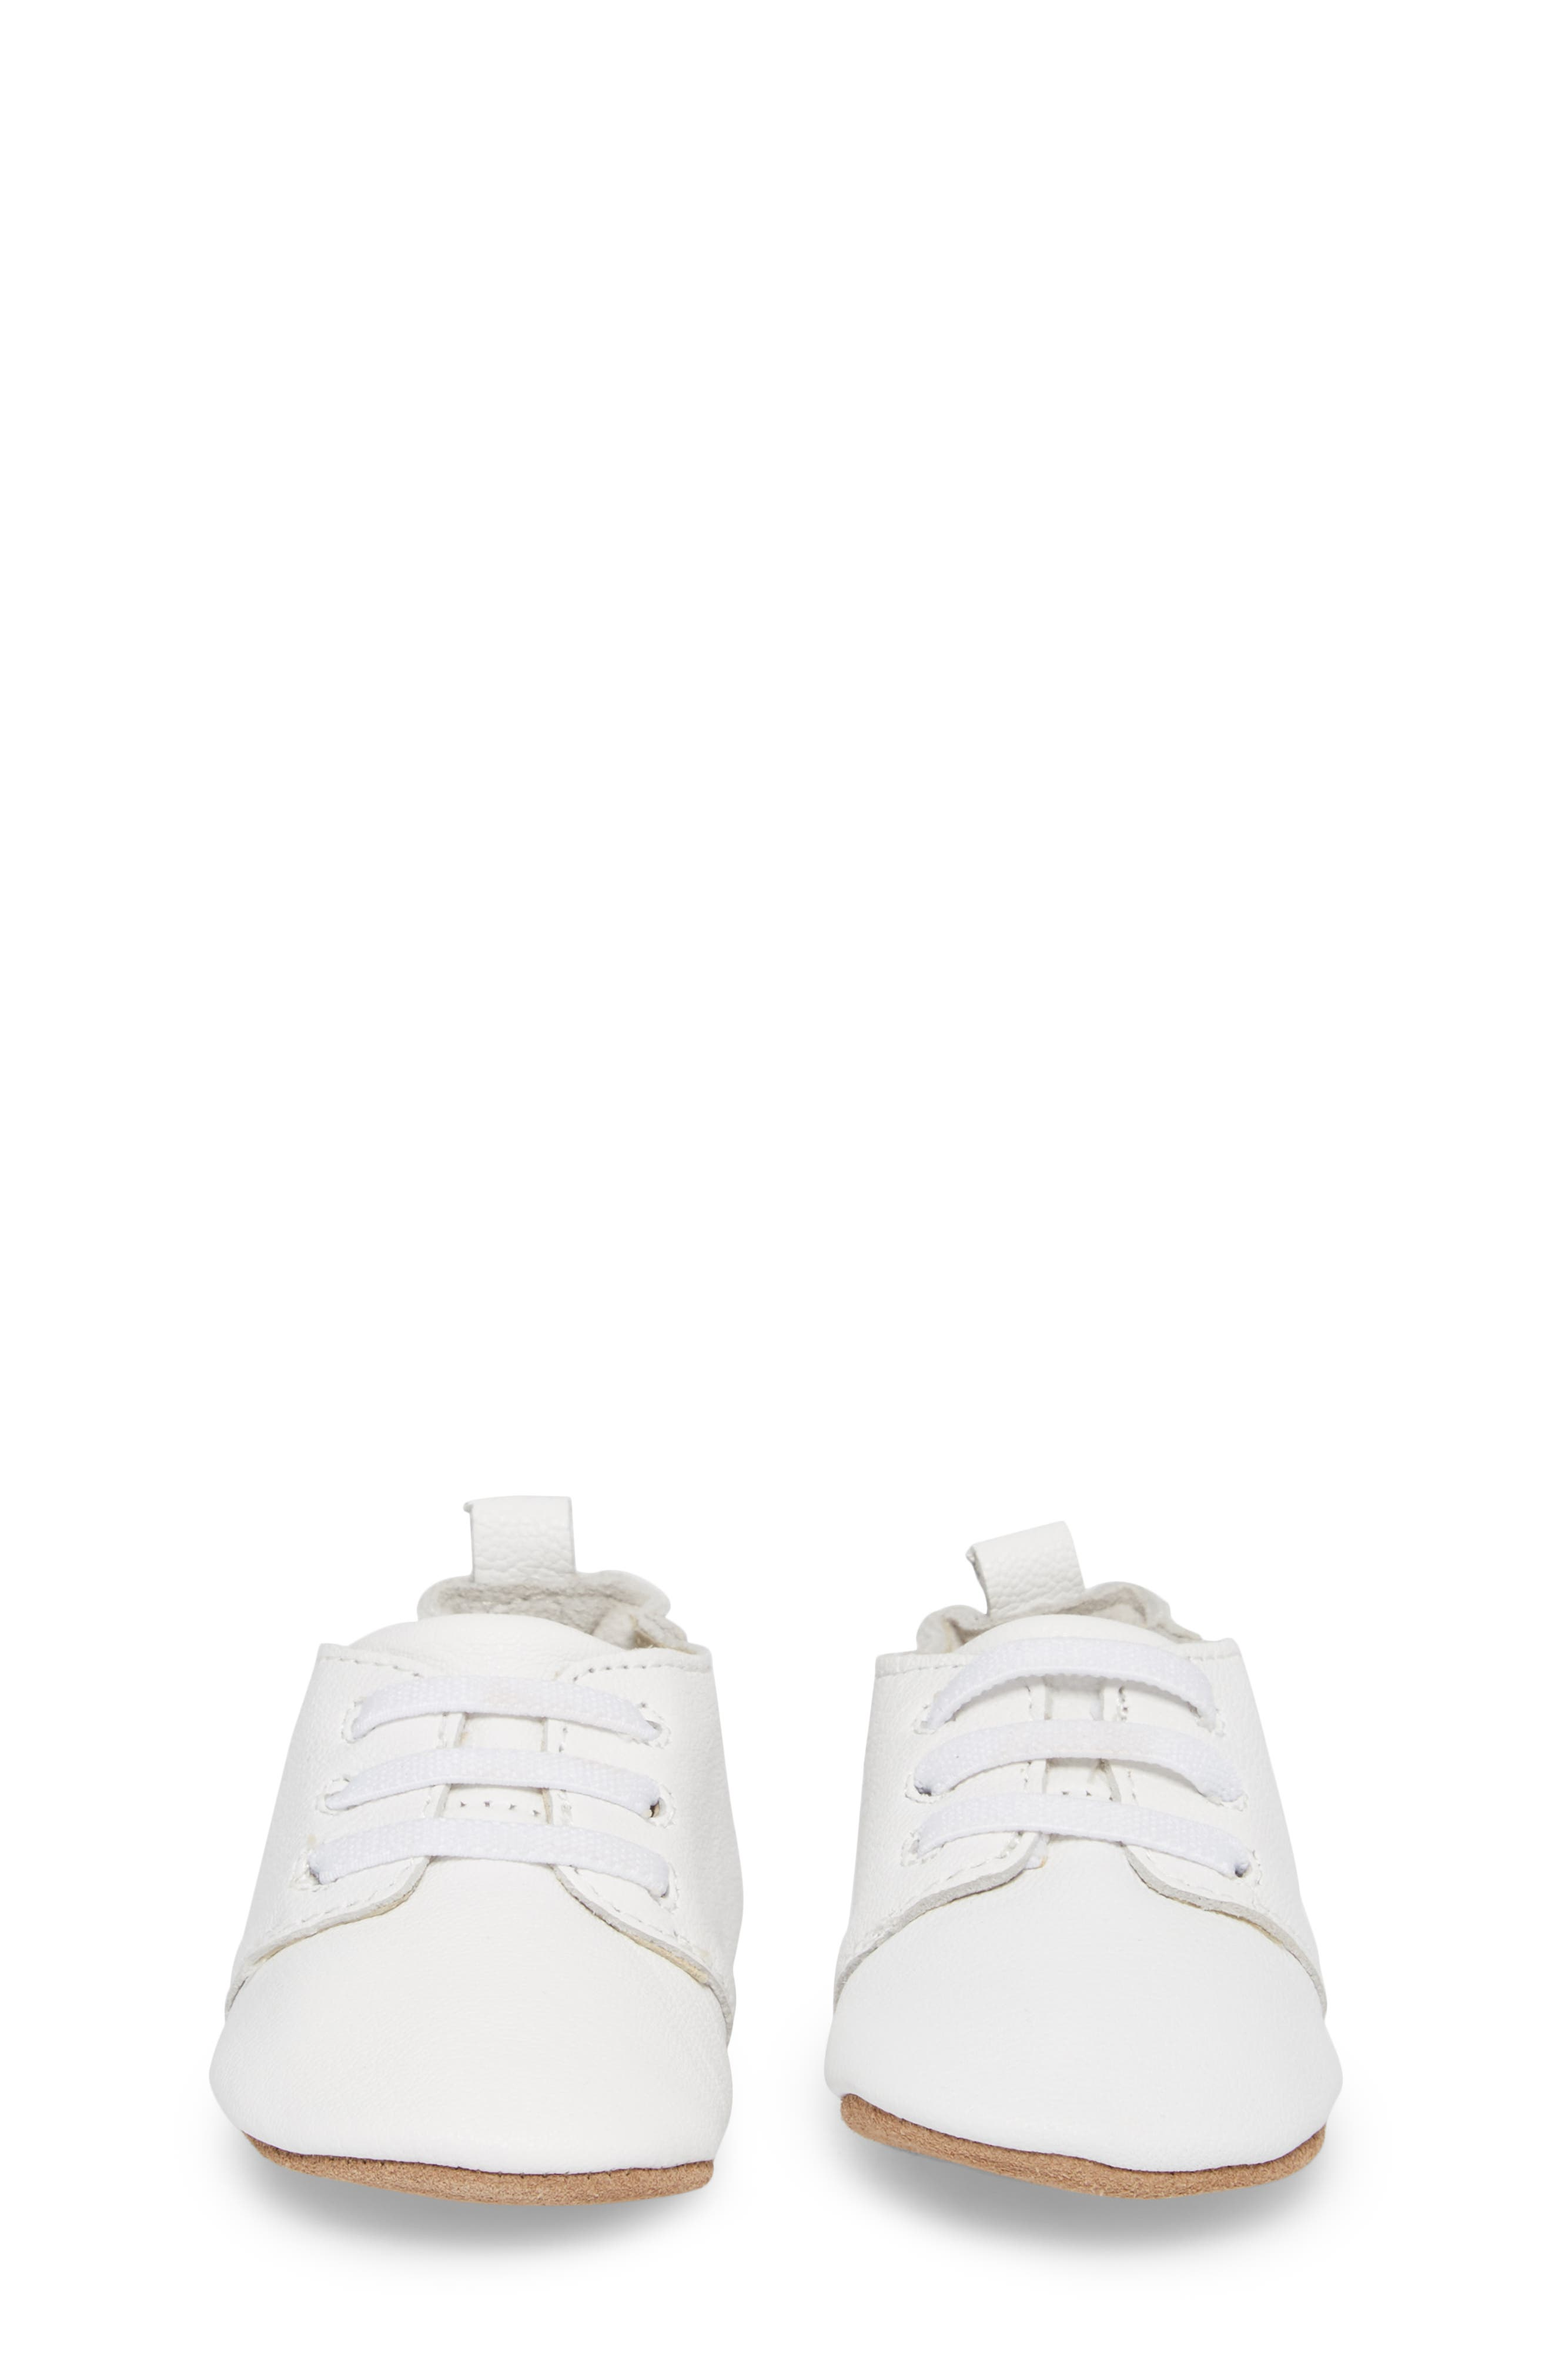 Owen Oxford Crib Shoe,                             Alternate thumbnail 5, color,                             White